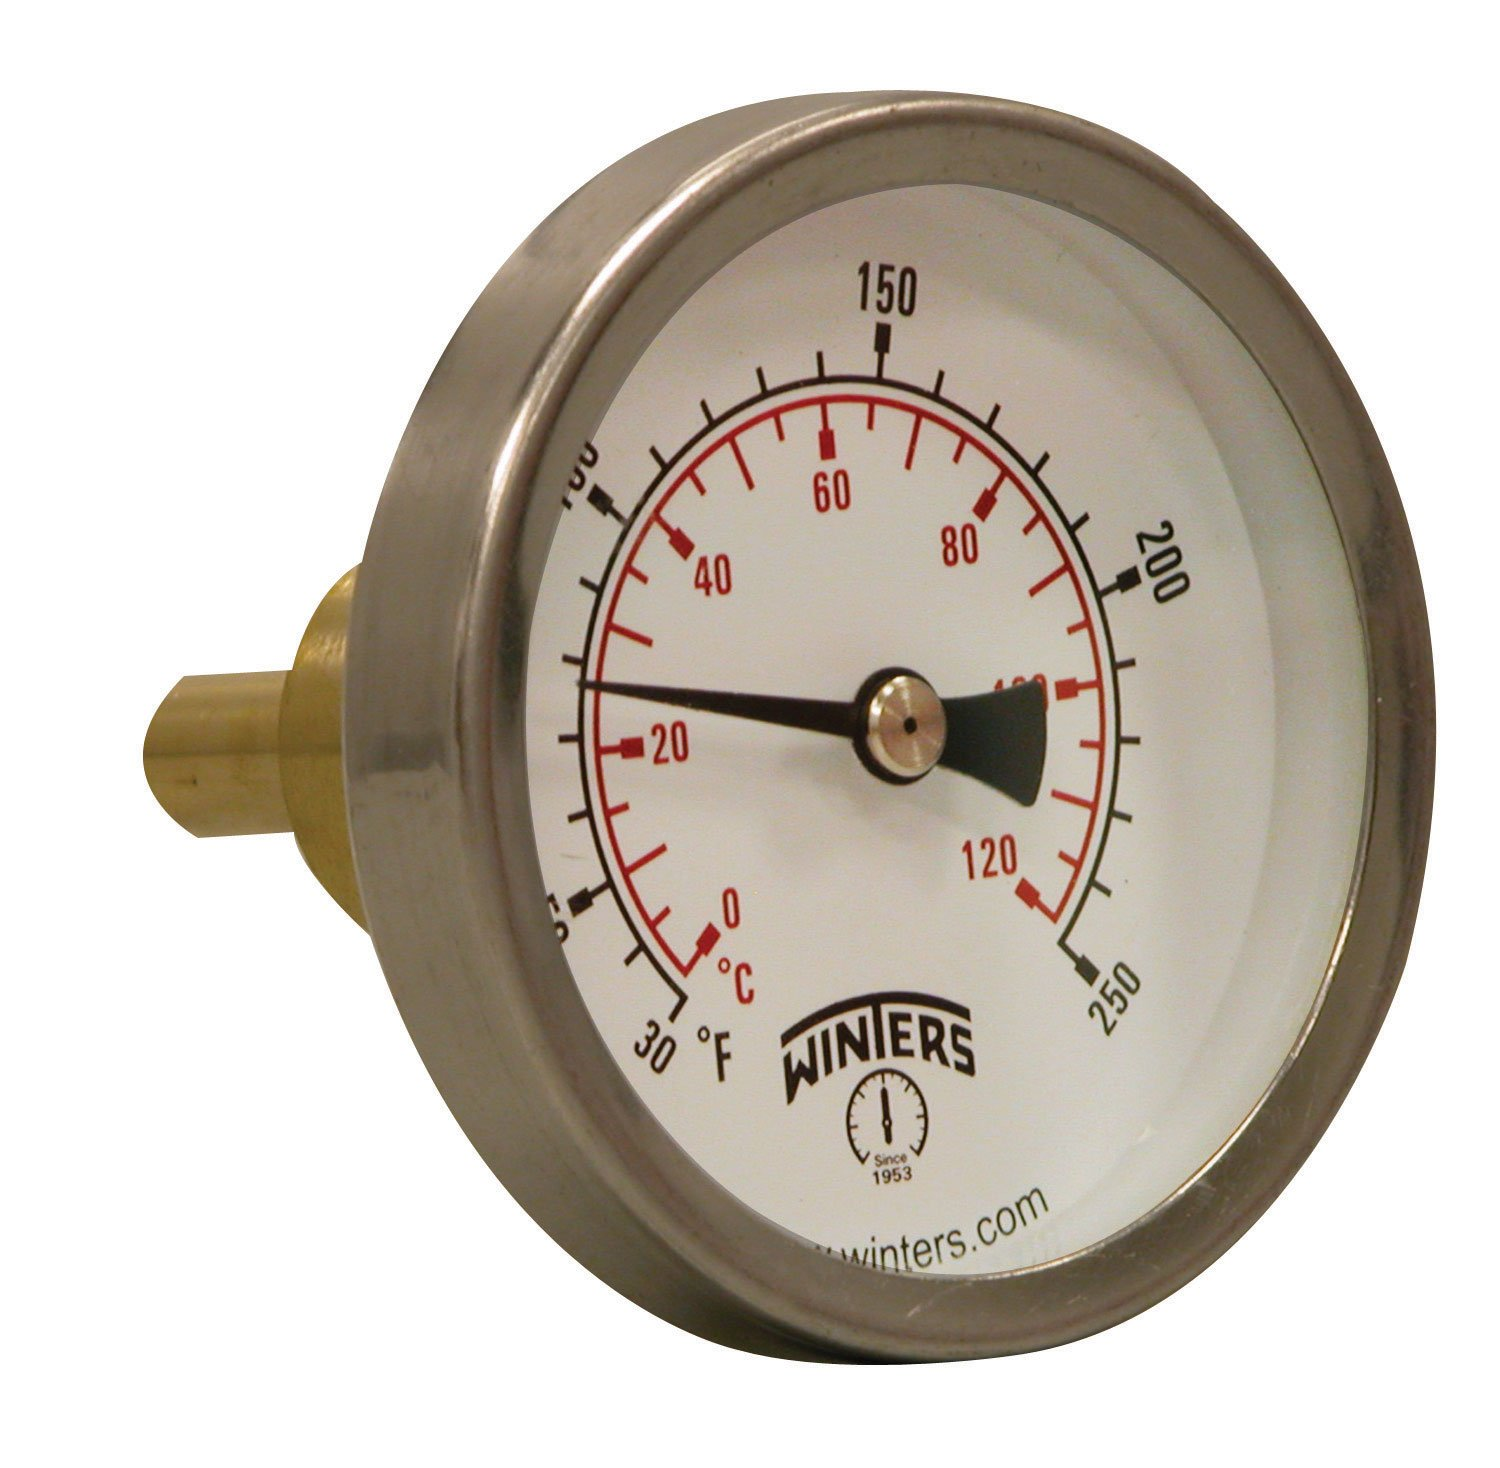 Winters TSW Series Aluminum Dual Scale Hot Water Thermometer, Dial Type, 2-1/2'' Dial, 3/4'' Sweatwell, 30-250 F/C Range